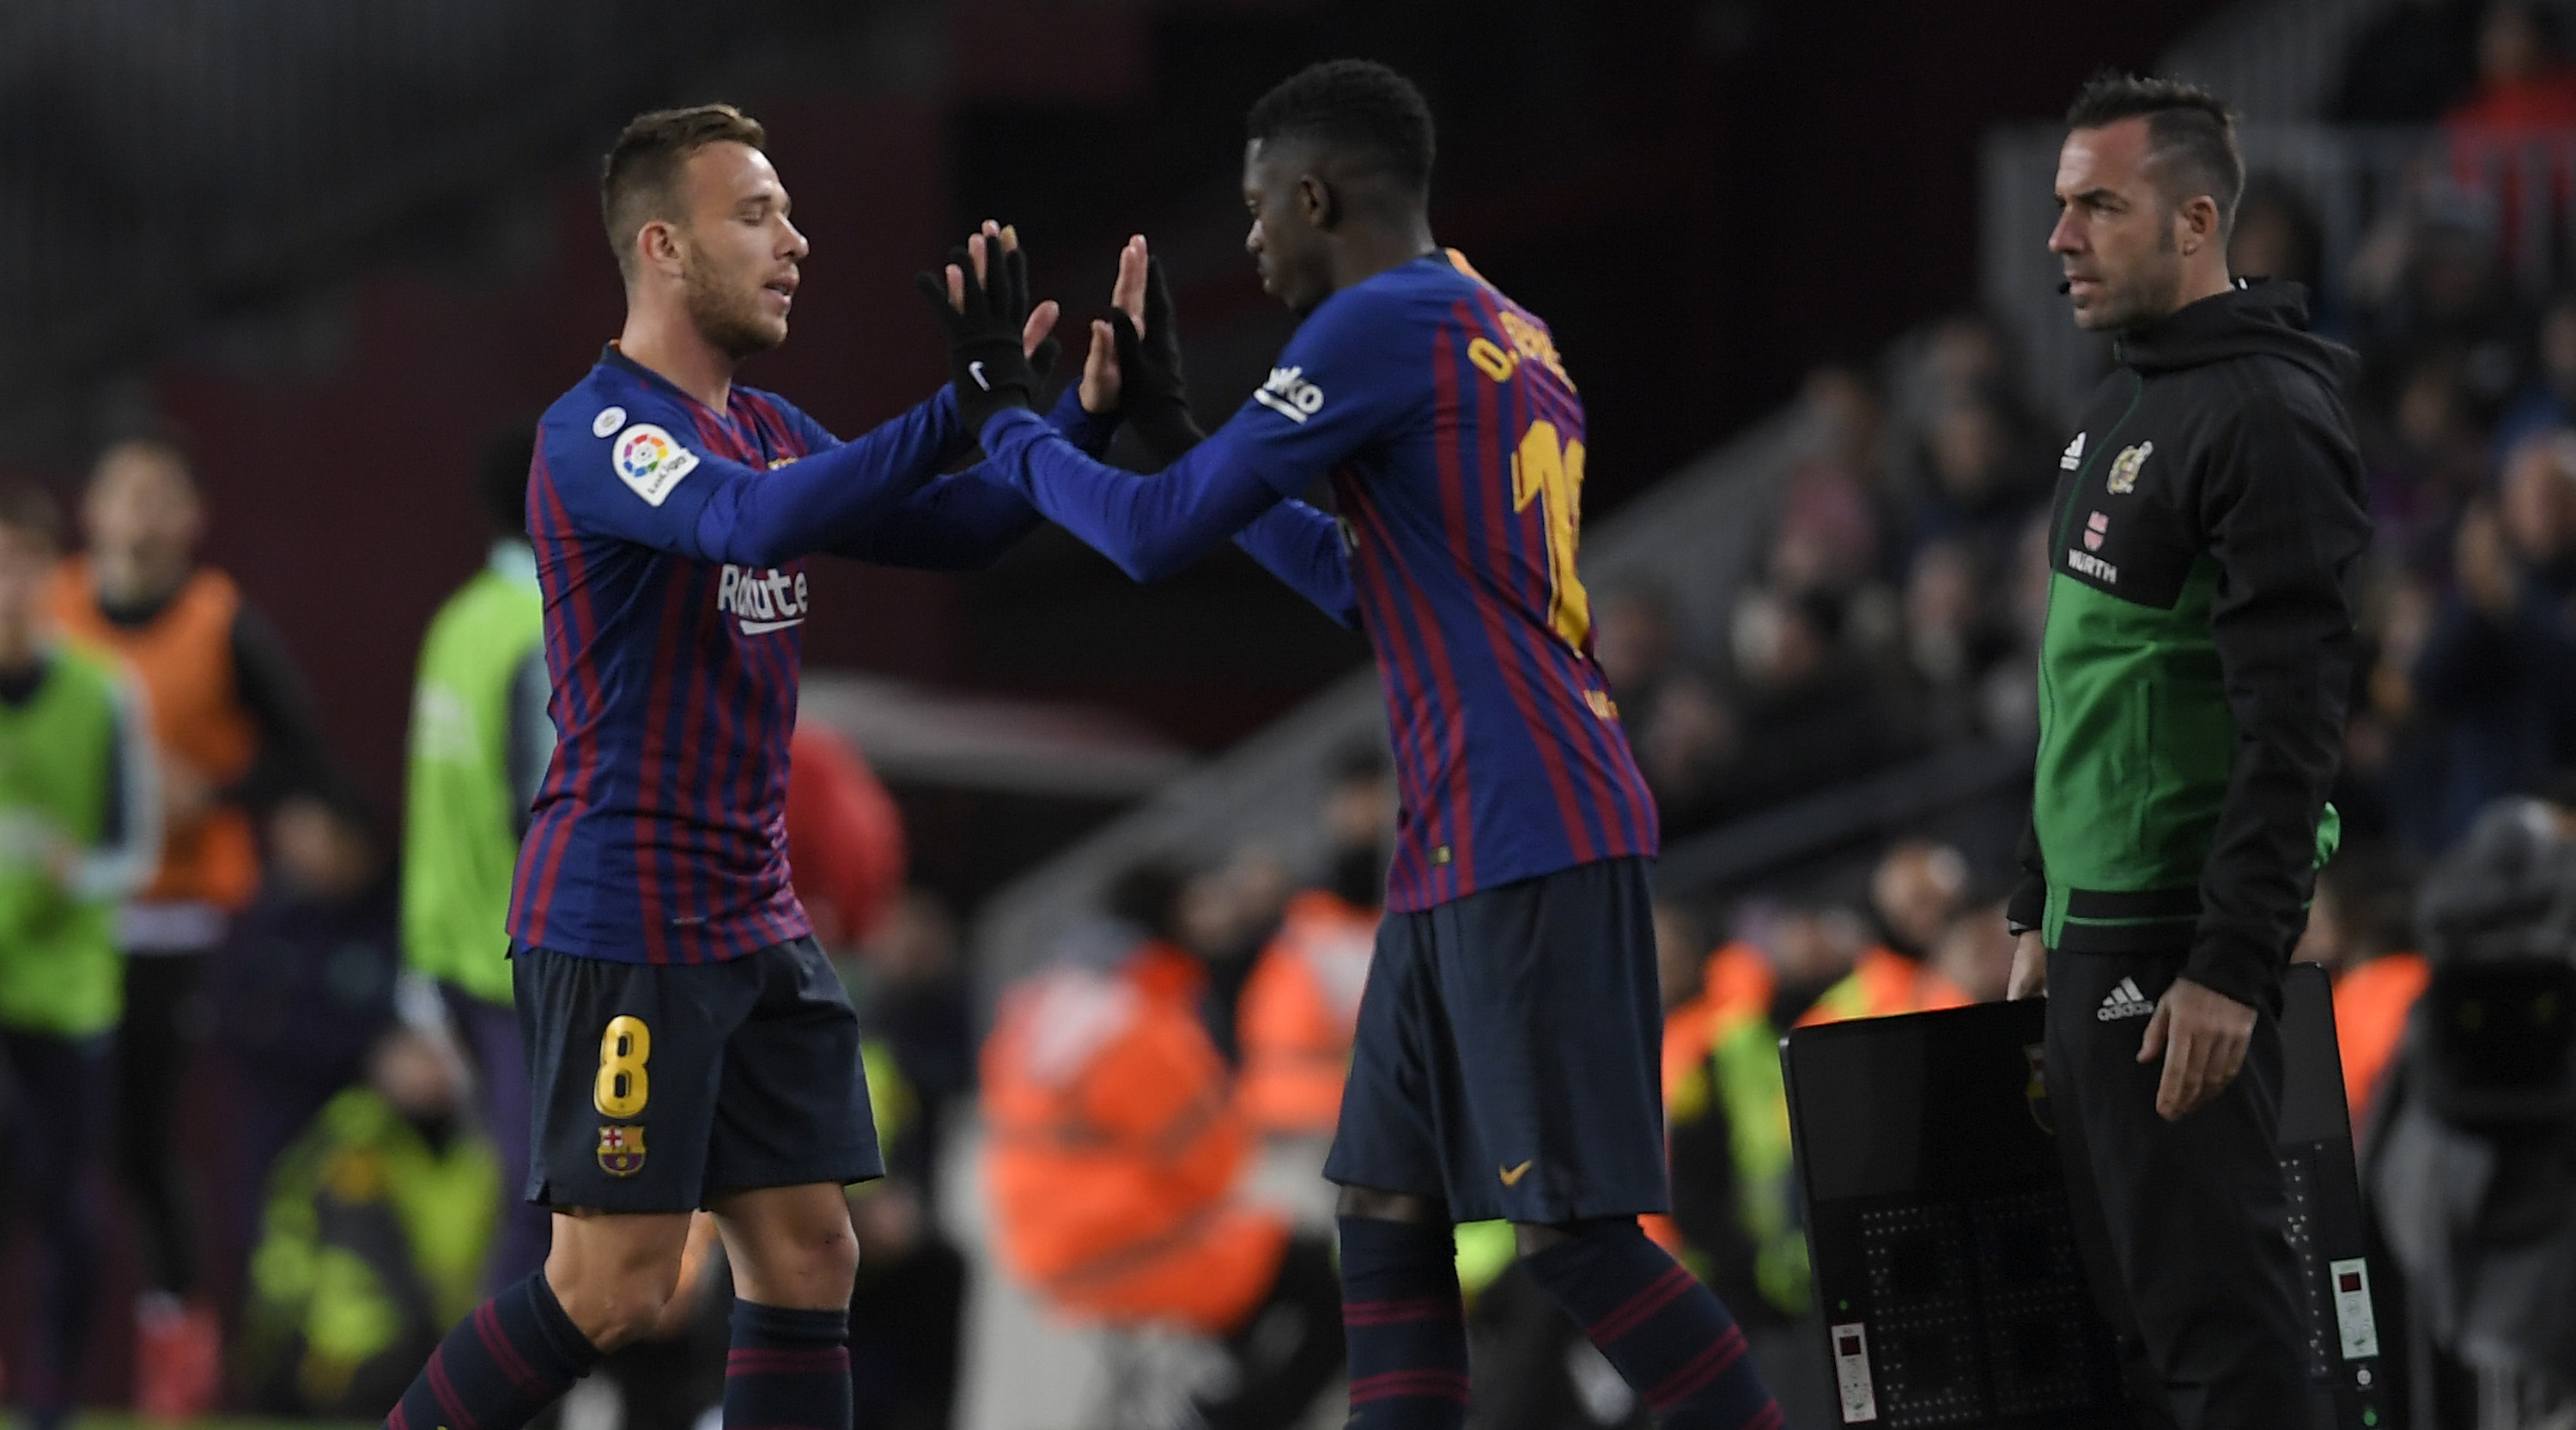 Barcelona's Brazilian midfielder Arthur (L) greets Barcelona's French forward Ousmane Dembele as he leaves the pitch during the Spanish League football match between FC Barcelona and SD Eibar at the Camp Nou stadium in Barcelona on January 13, 2019. (Photo by LLUIS GENE / AFP) (Photo credit should read LLUIS GENE/AFP/Getty Images)